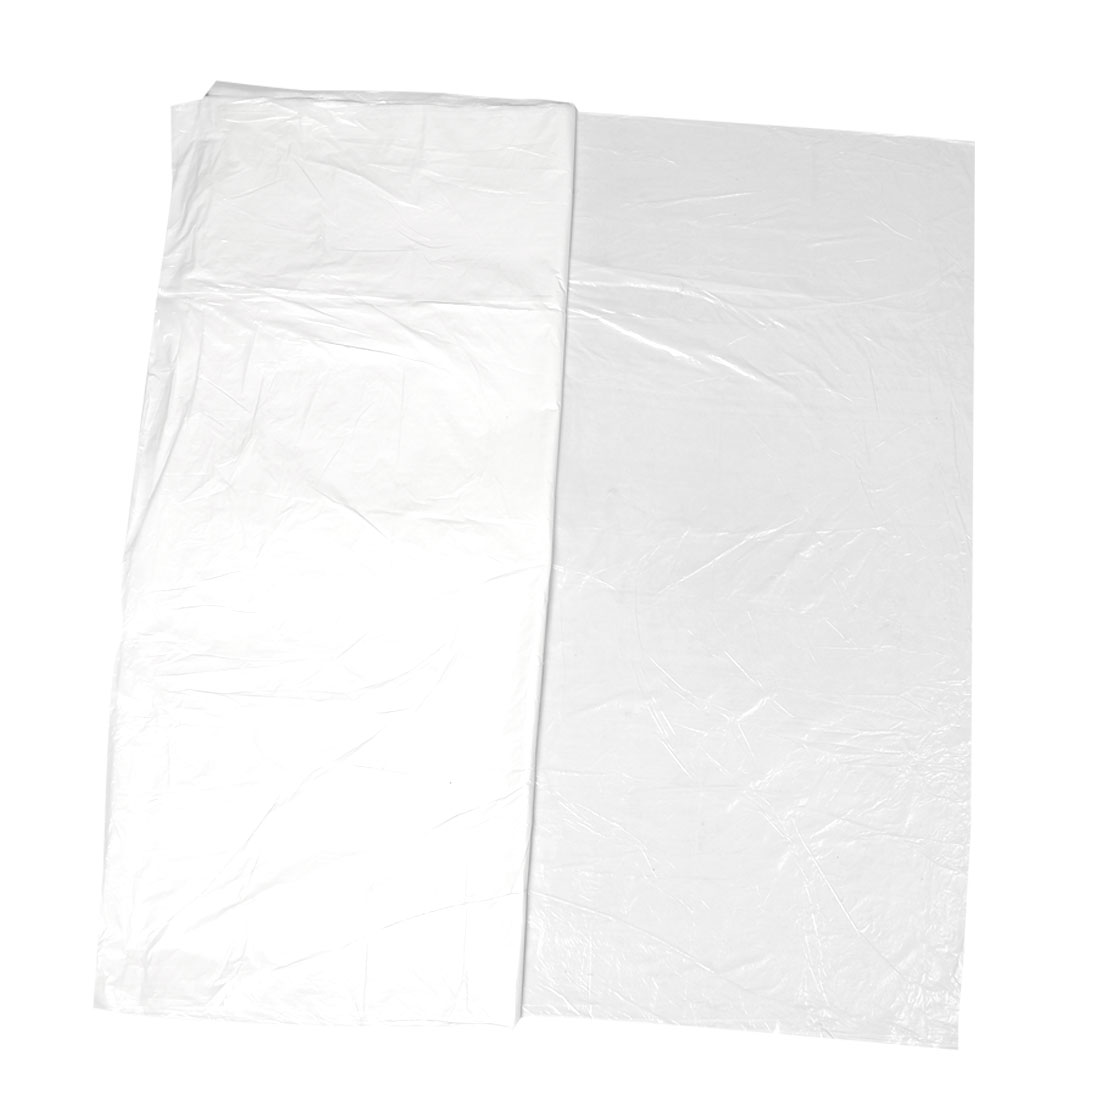 180cm x 180cm Rectangle Shape White Plastic Table Mat 10 Pcs